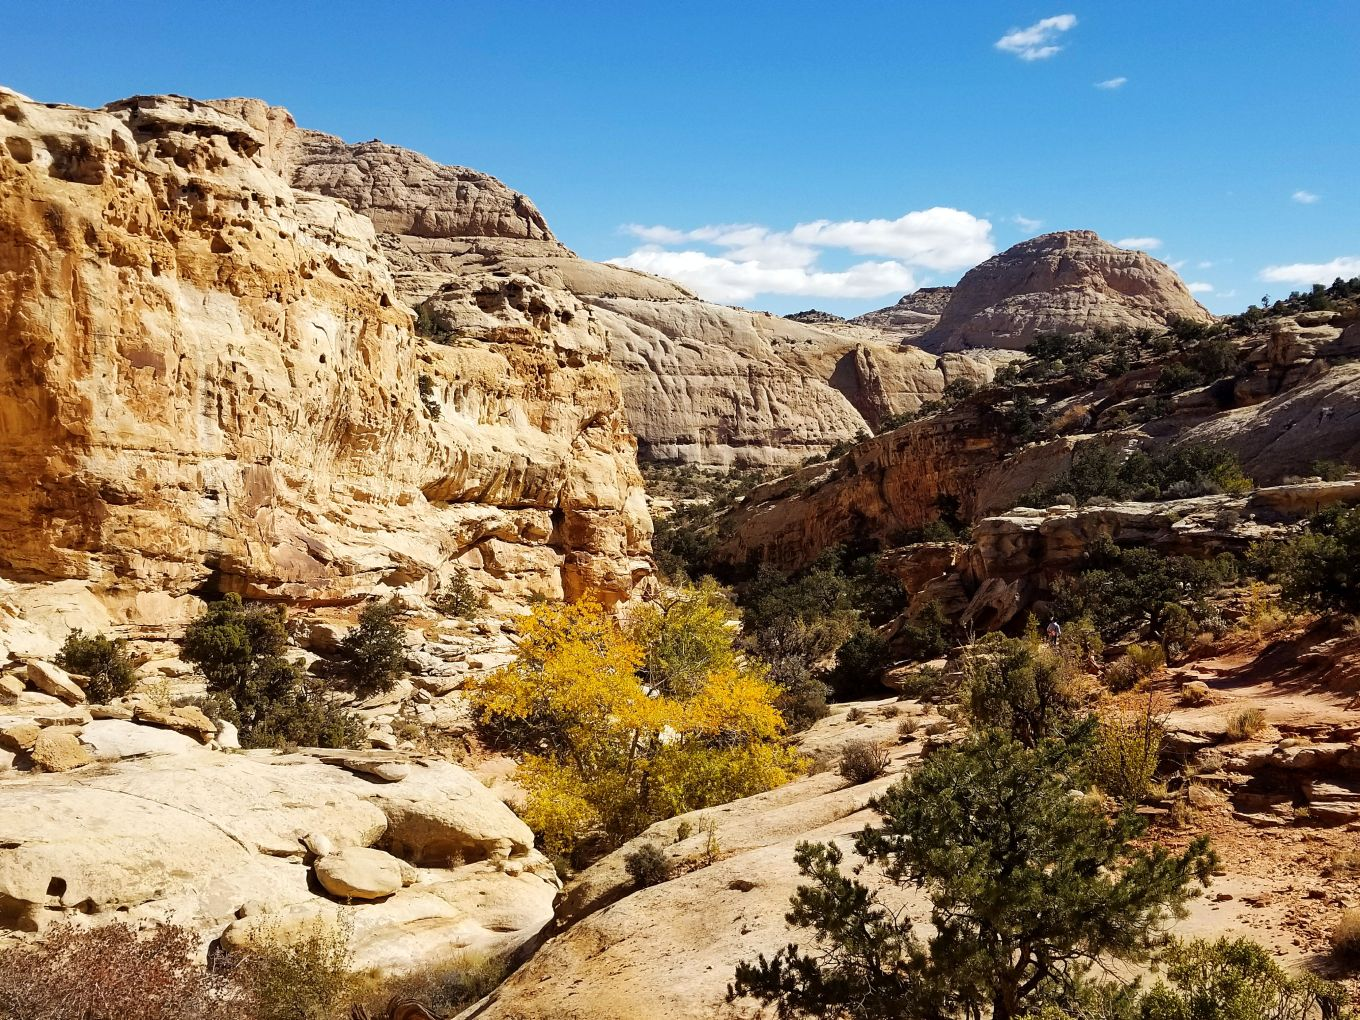 The dry creek bed of Capitol Reef's Hickman Bridge Trail